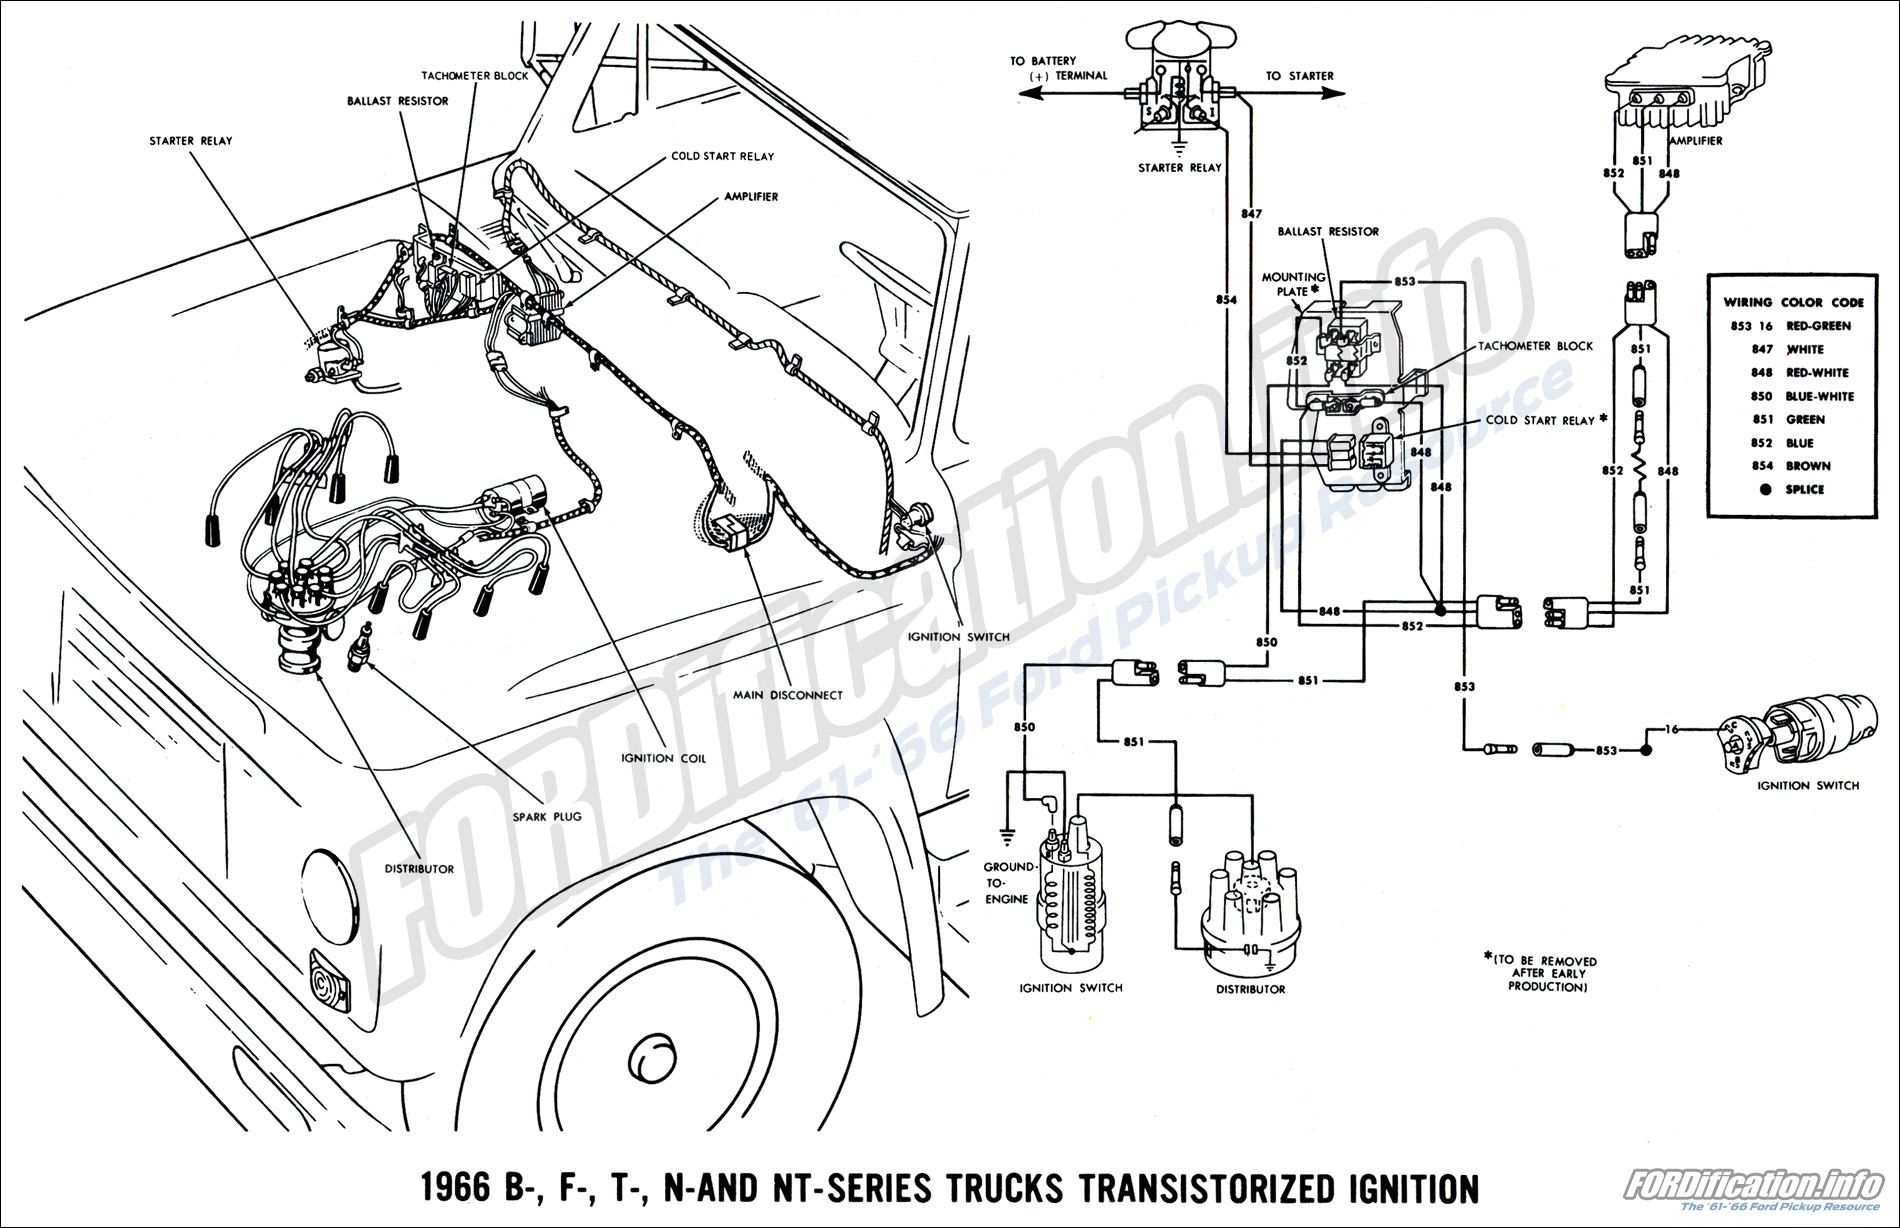 66transistorizedignition 1966 ford truck wiring diagrams fordification info the '61 '66 1966 ford truck wiring diagram at crackthecode.co